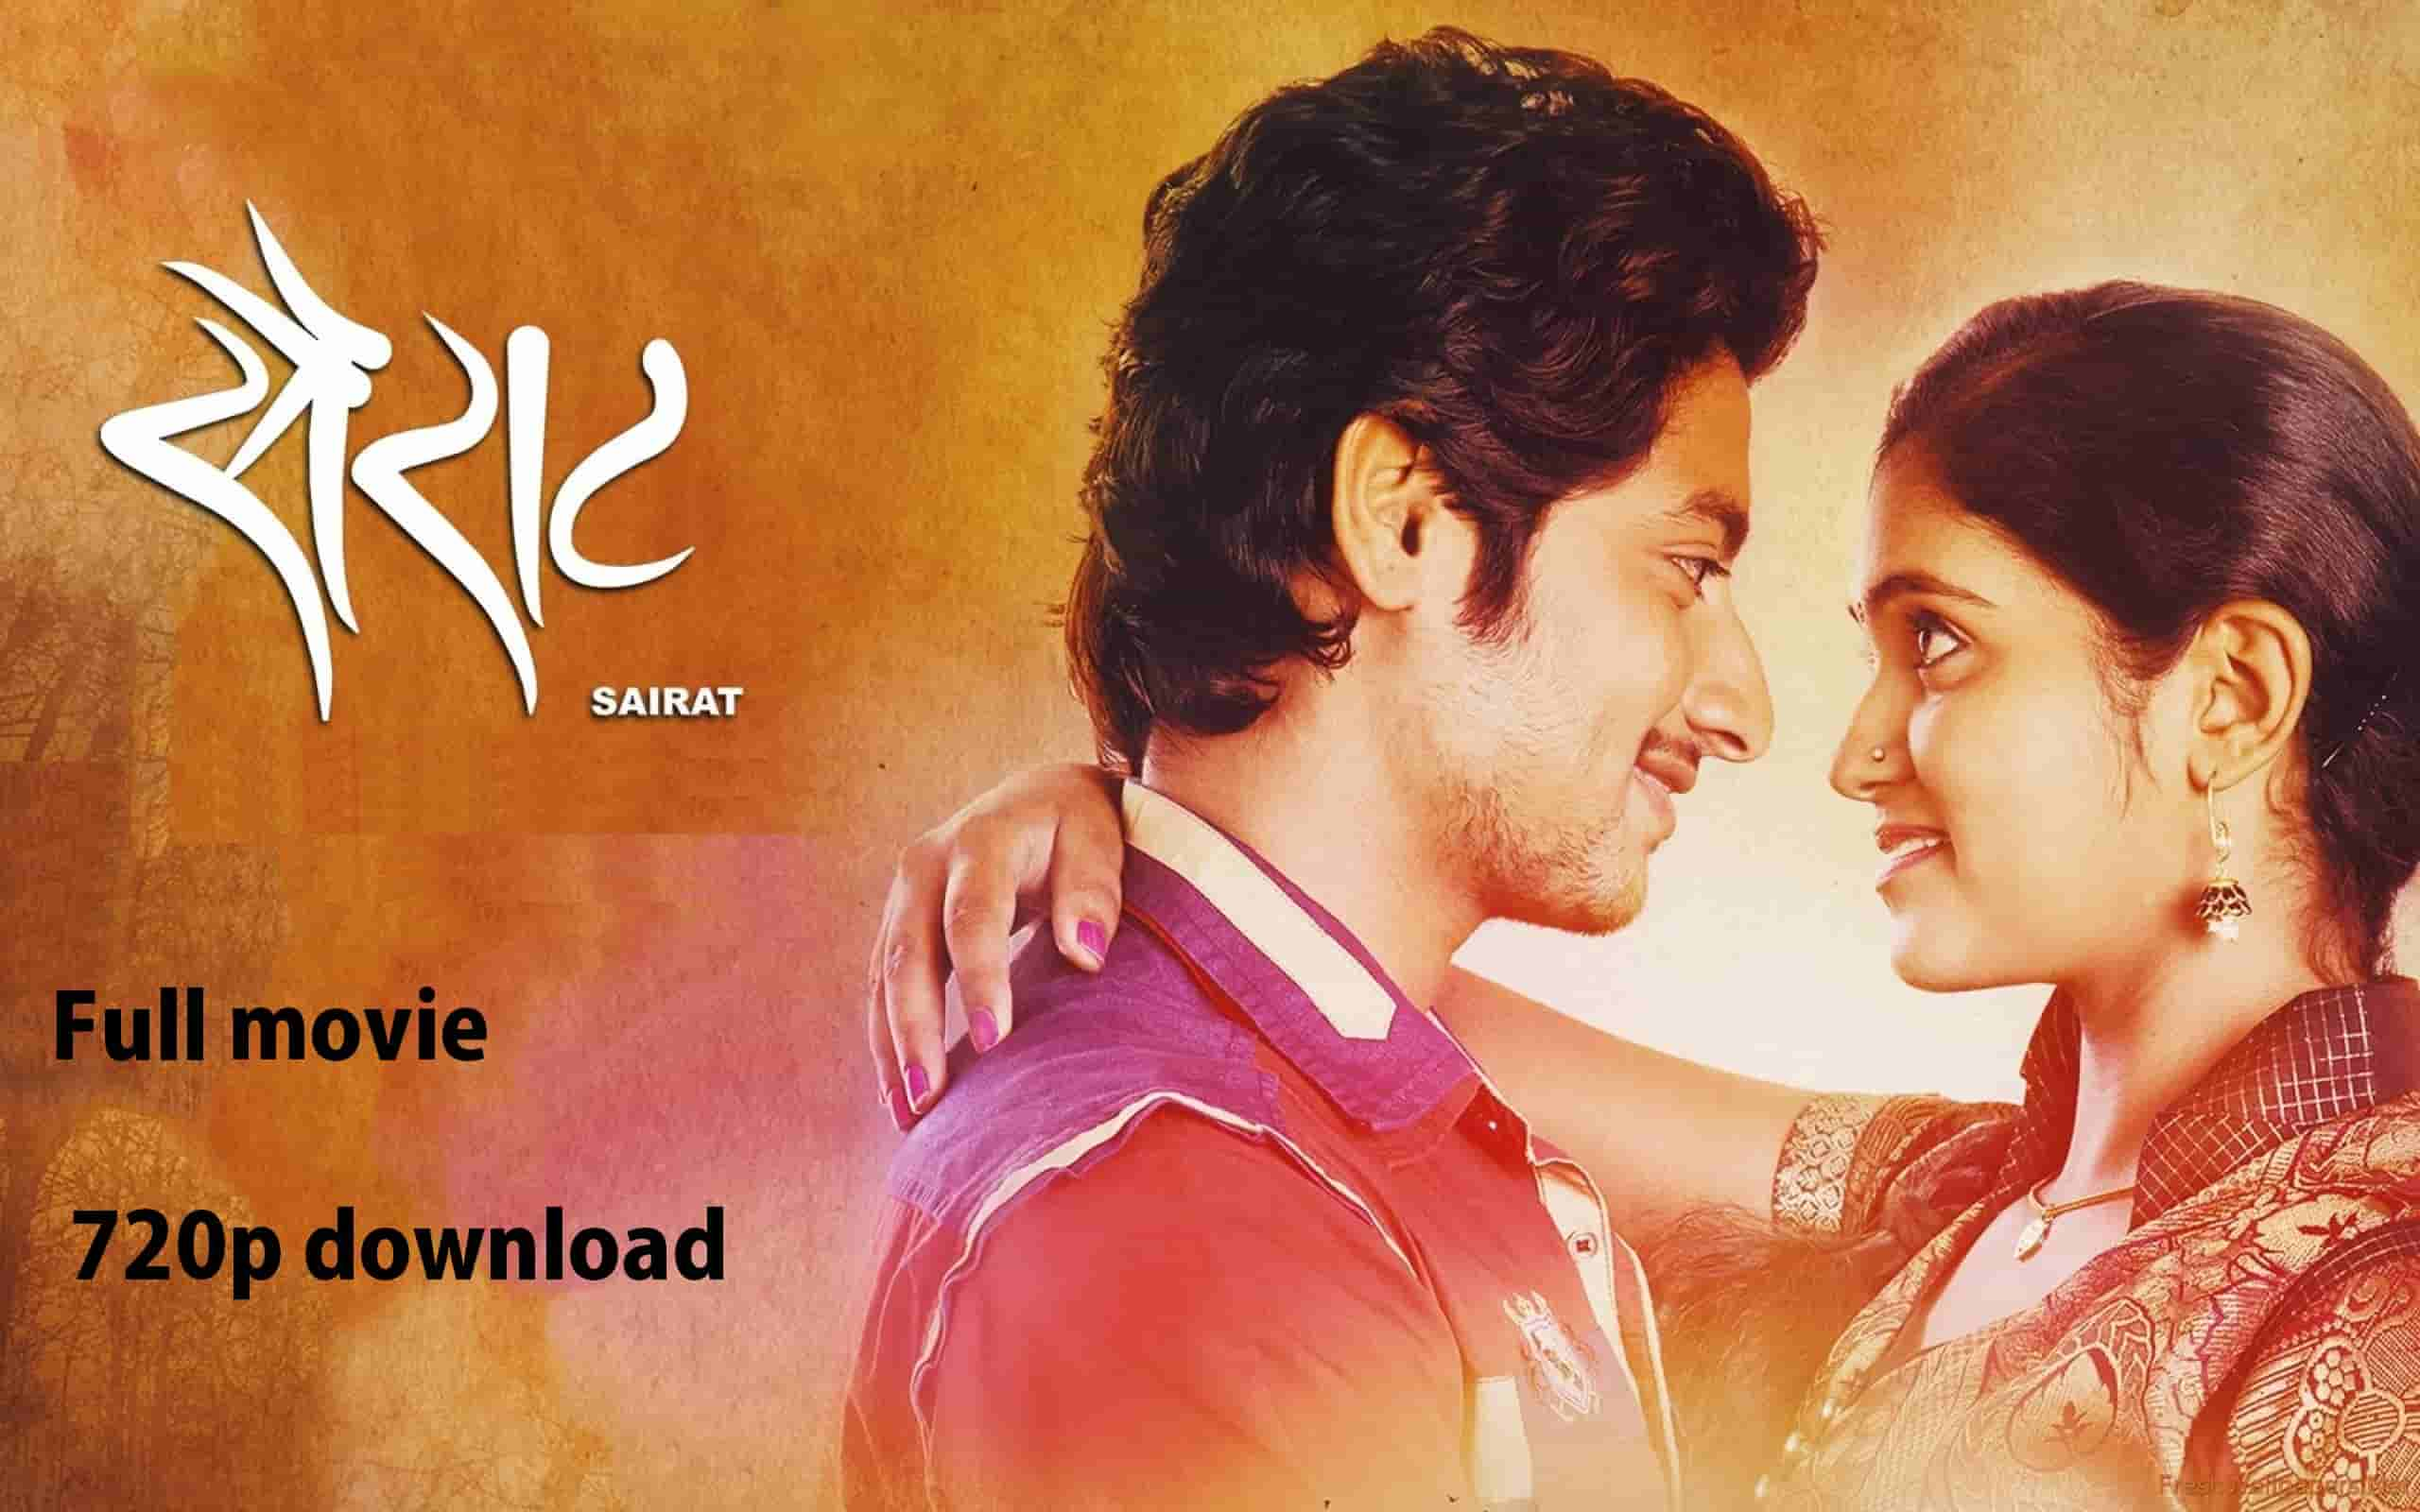 sairat full movie 720p download